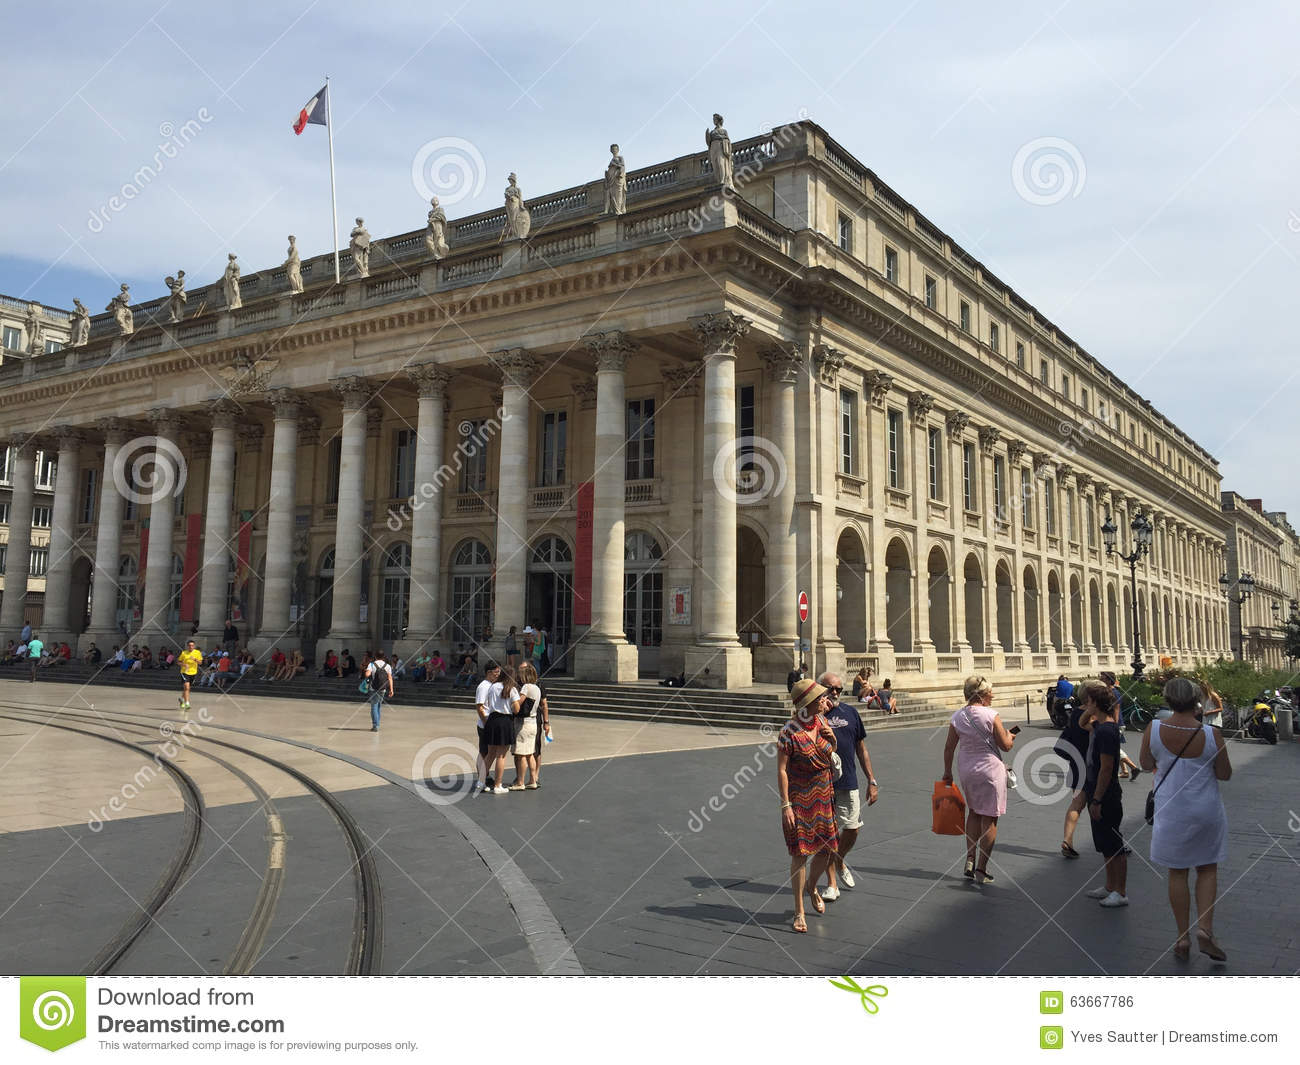 Grand th tre de bordeaux architecture du 18 me si cle for Architecture 18e siecle france